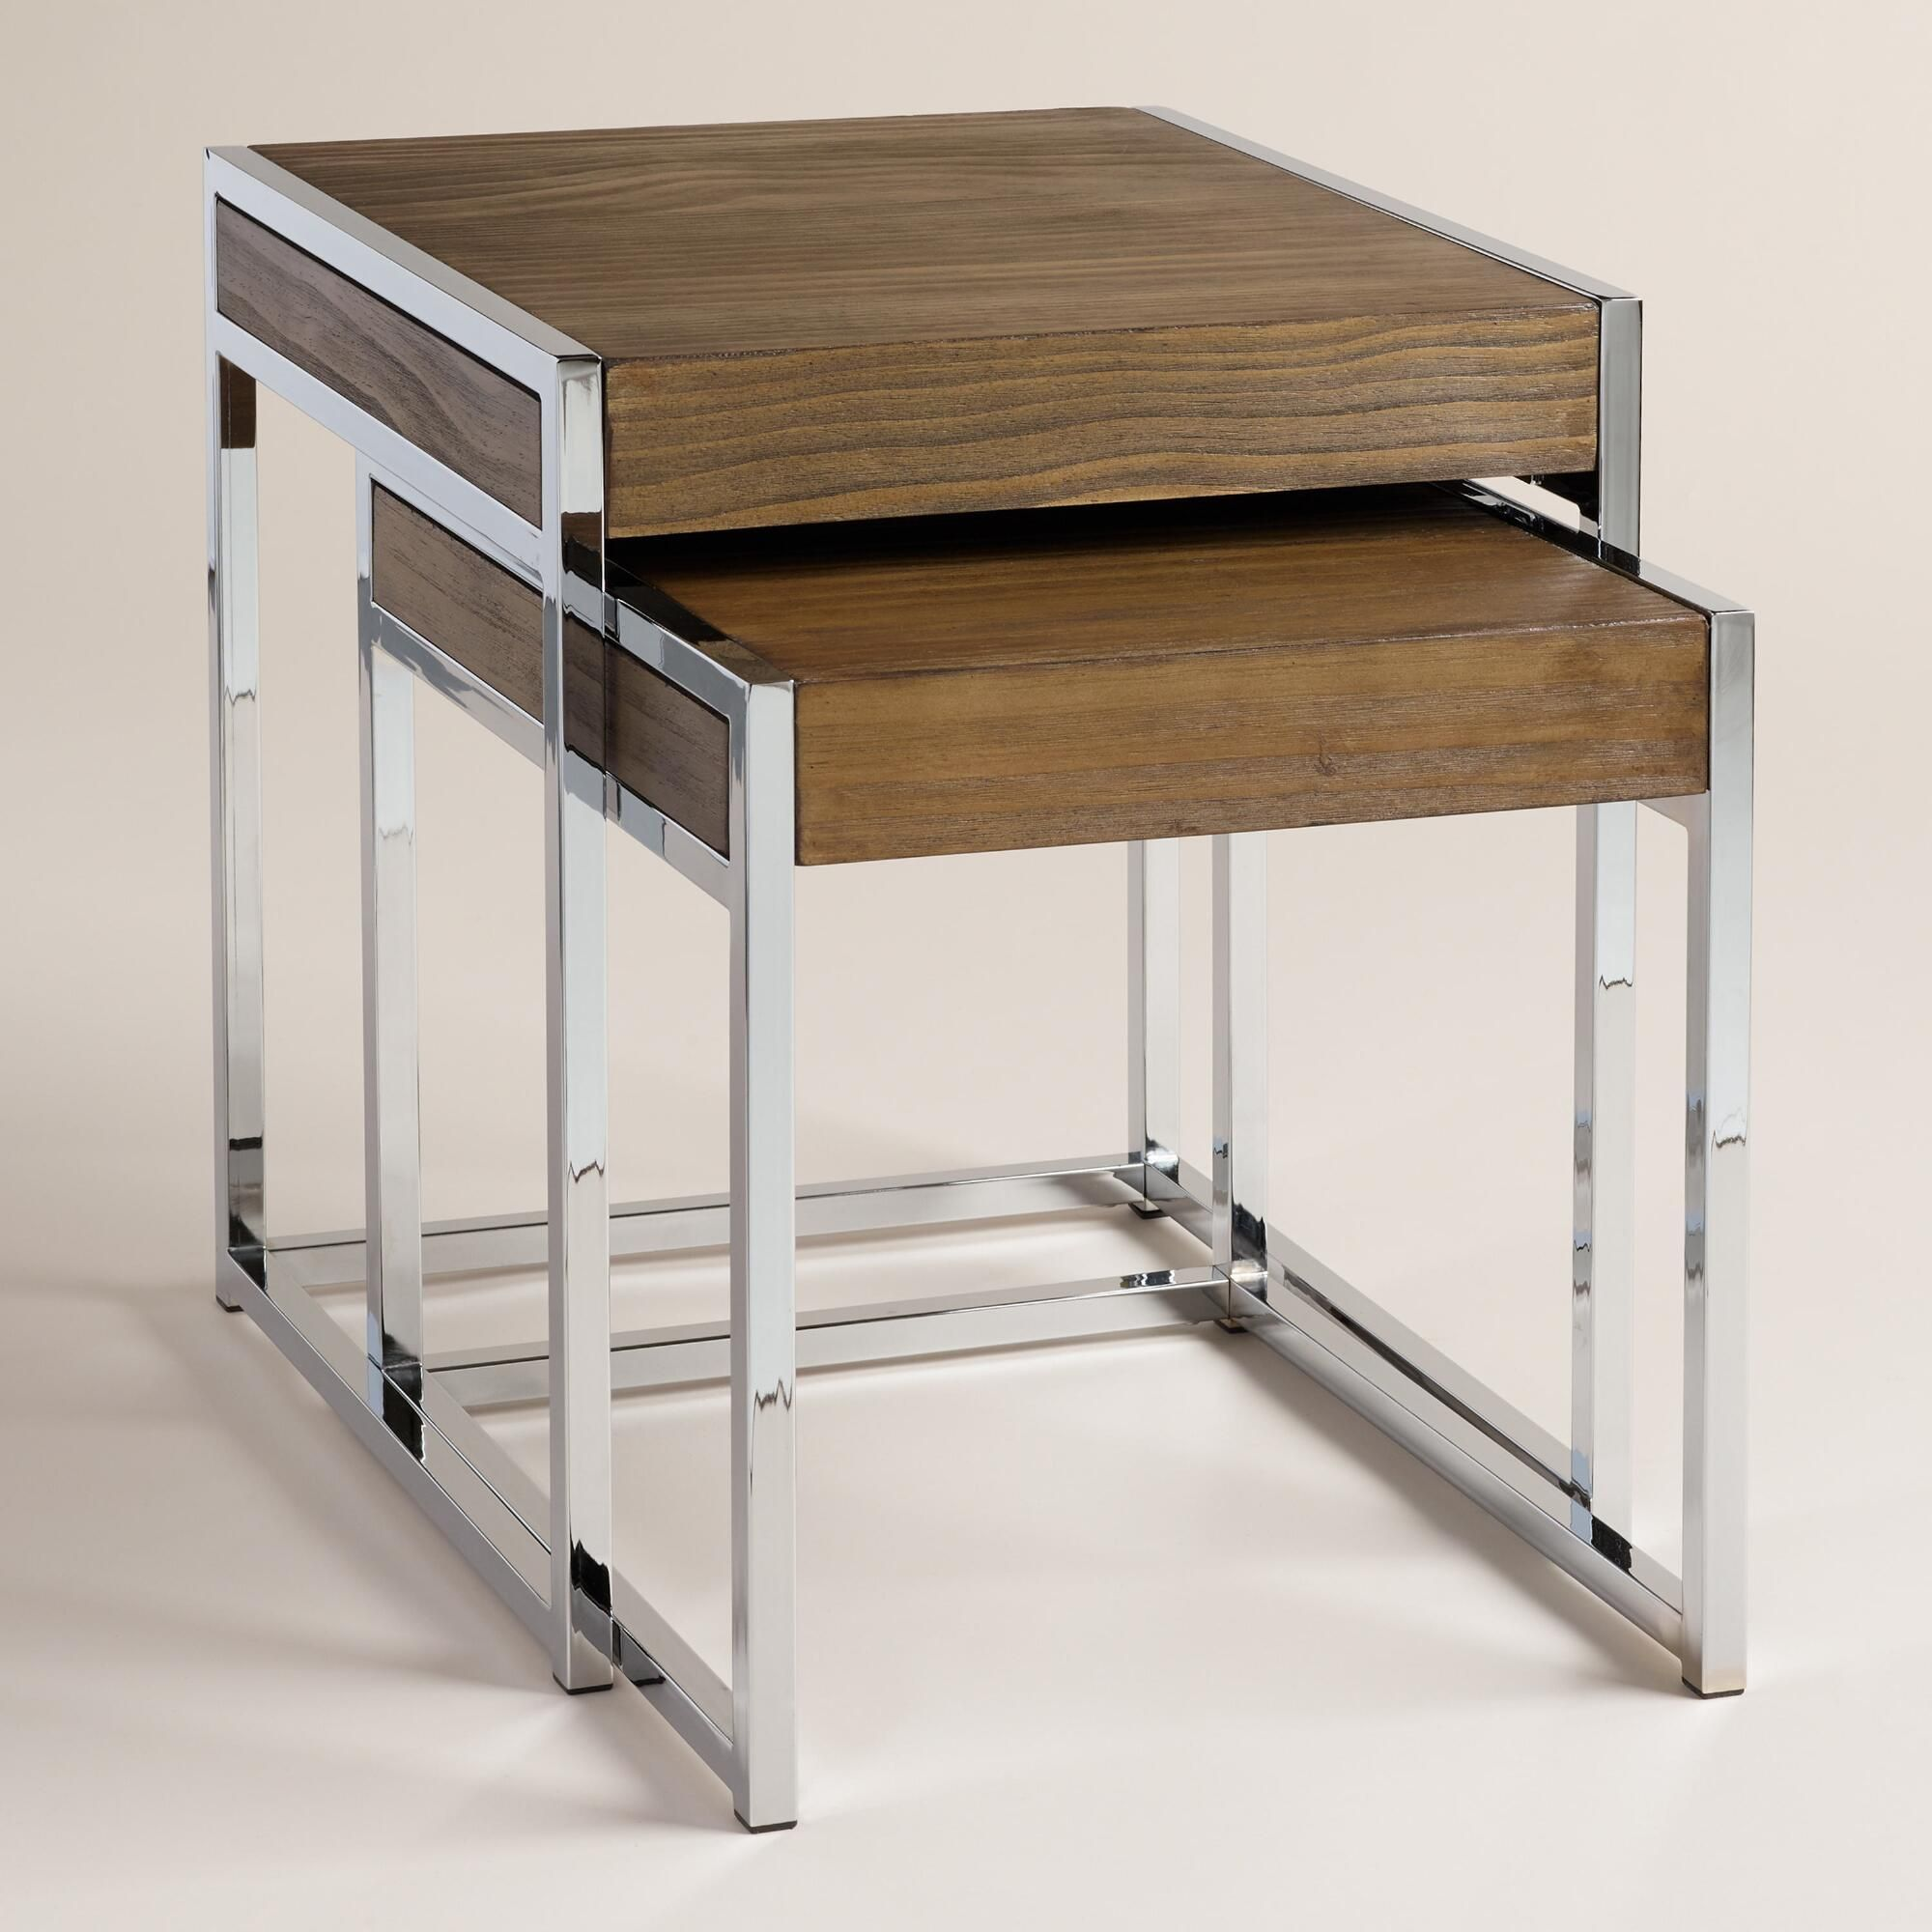 Wood and chrome pierceson nesting tables set of 2 contemporary with a square chrome tube frame and a distressed wood surface our nesting tables marry geotapseo Choice Image